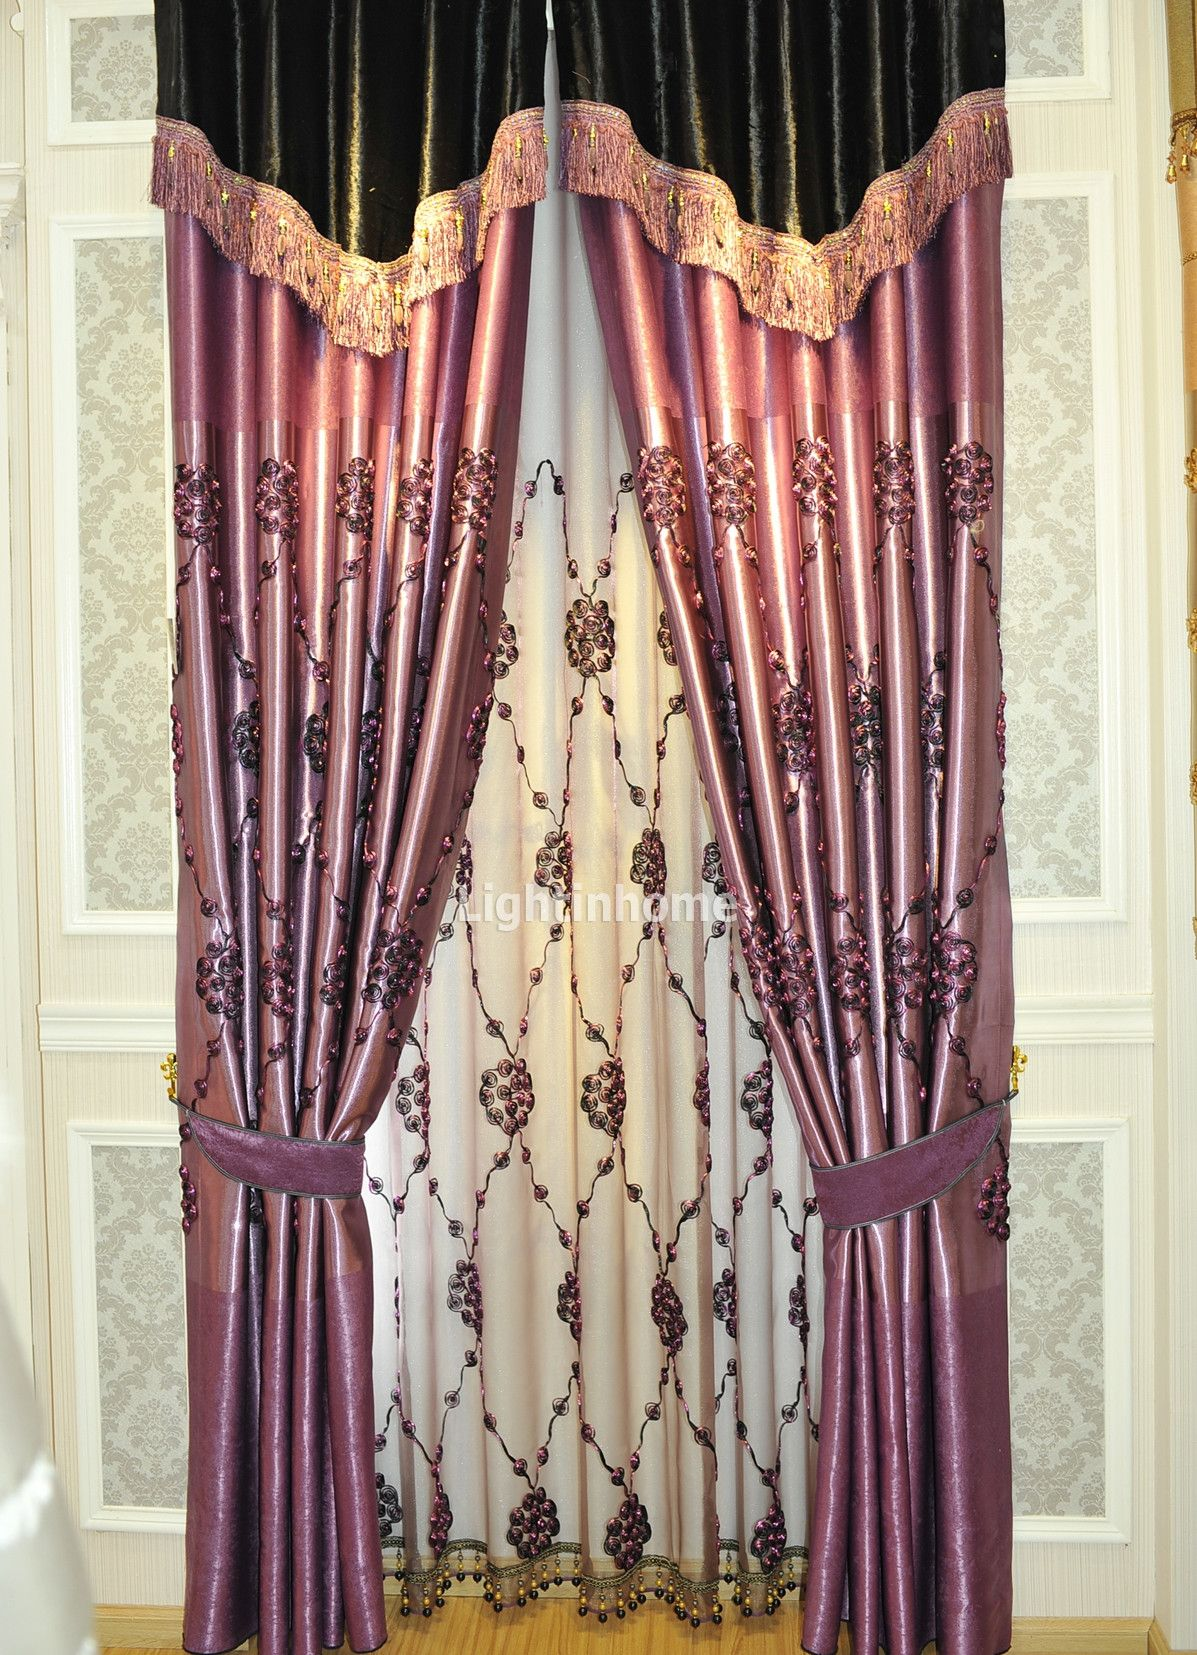 Swag Rose Patterned Romantic Bedroom Best Gold Purple Curtains